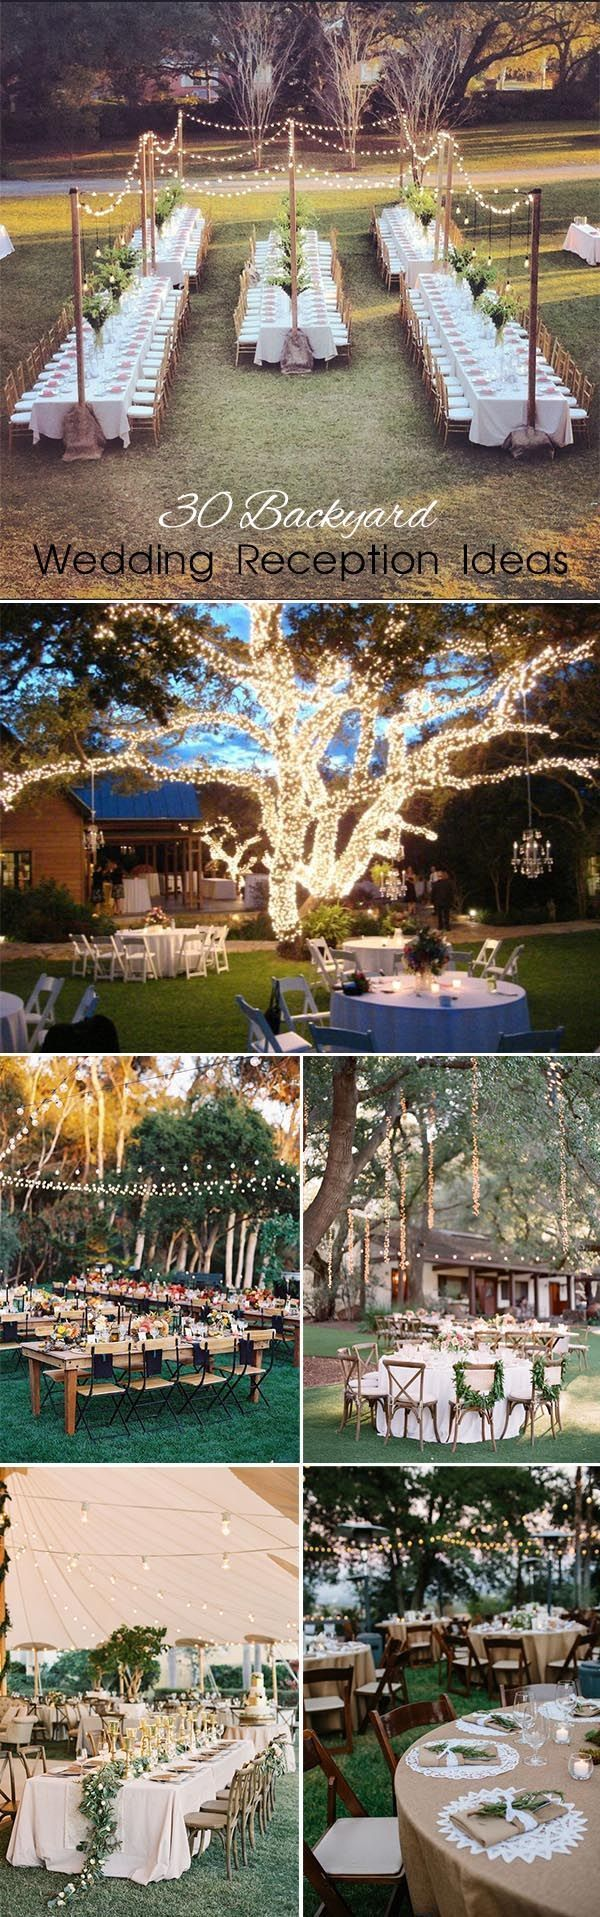 wedding reception at home ideas uk%0A    Beautiful Spring Outdoor Reception Decor Ideas   Reception  Romantic and  Scene